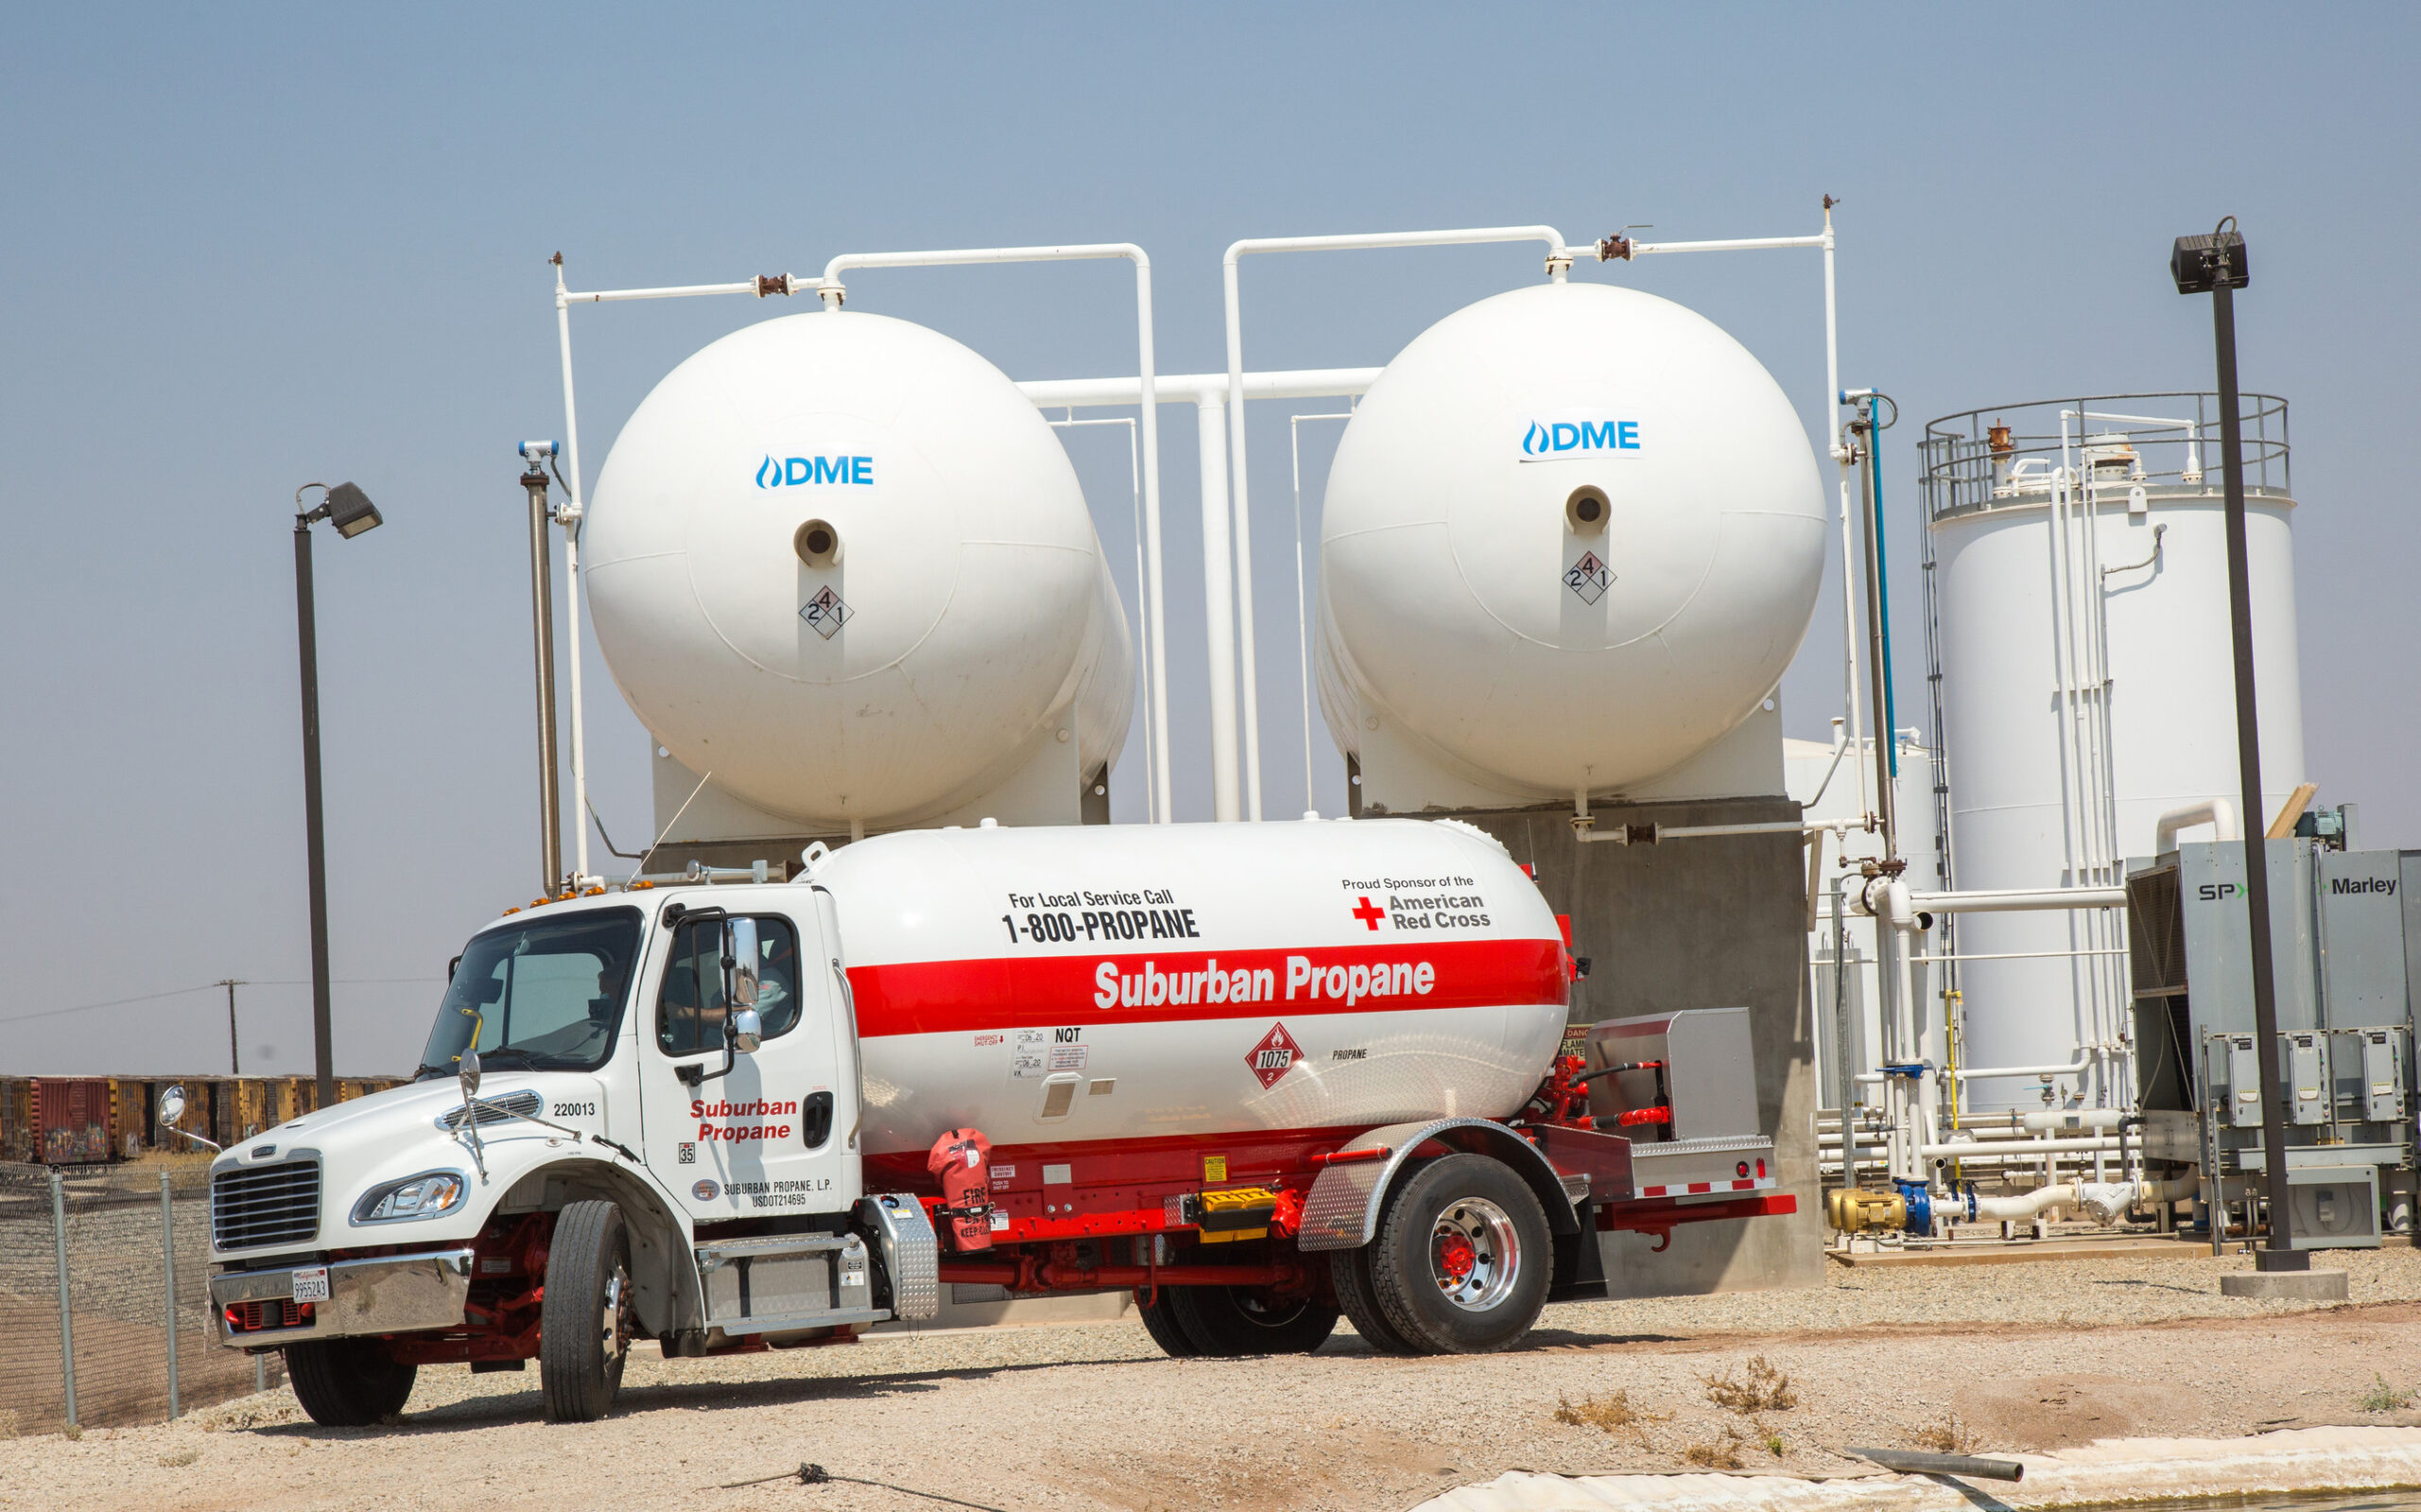 Suburban Propane Partners to acquire 39% stake in Oberon Fuels